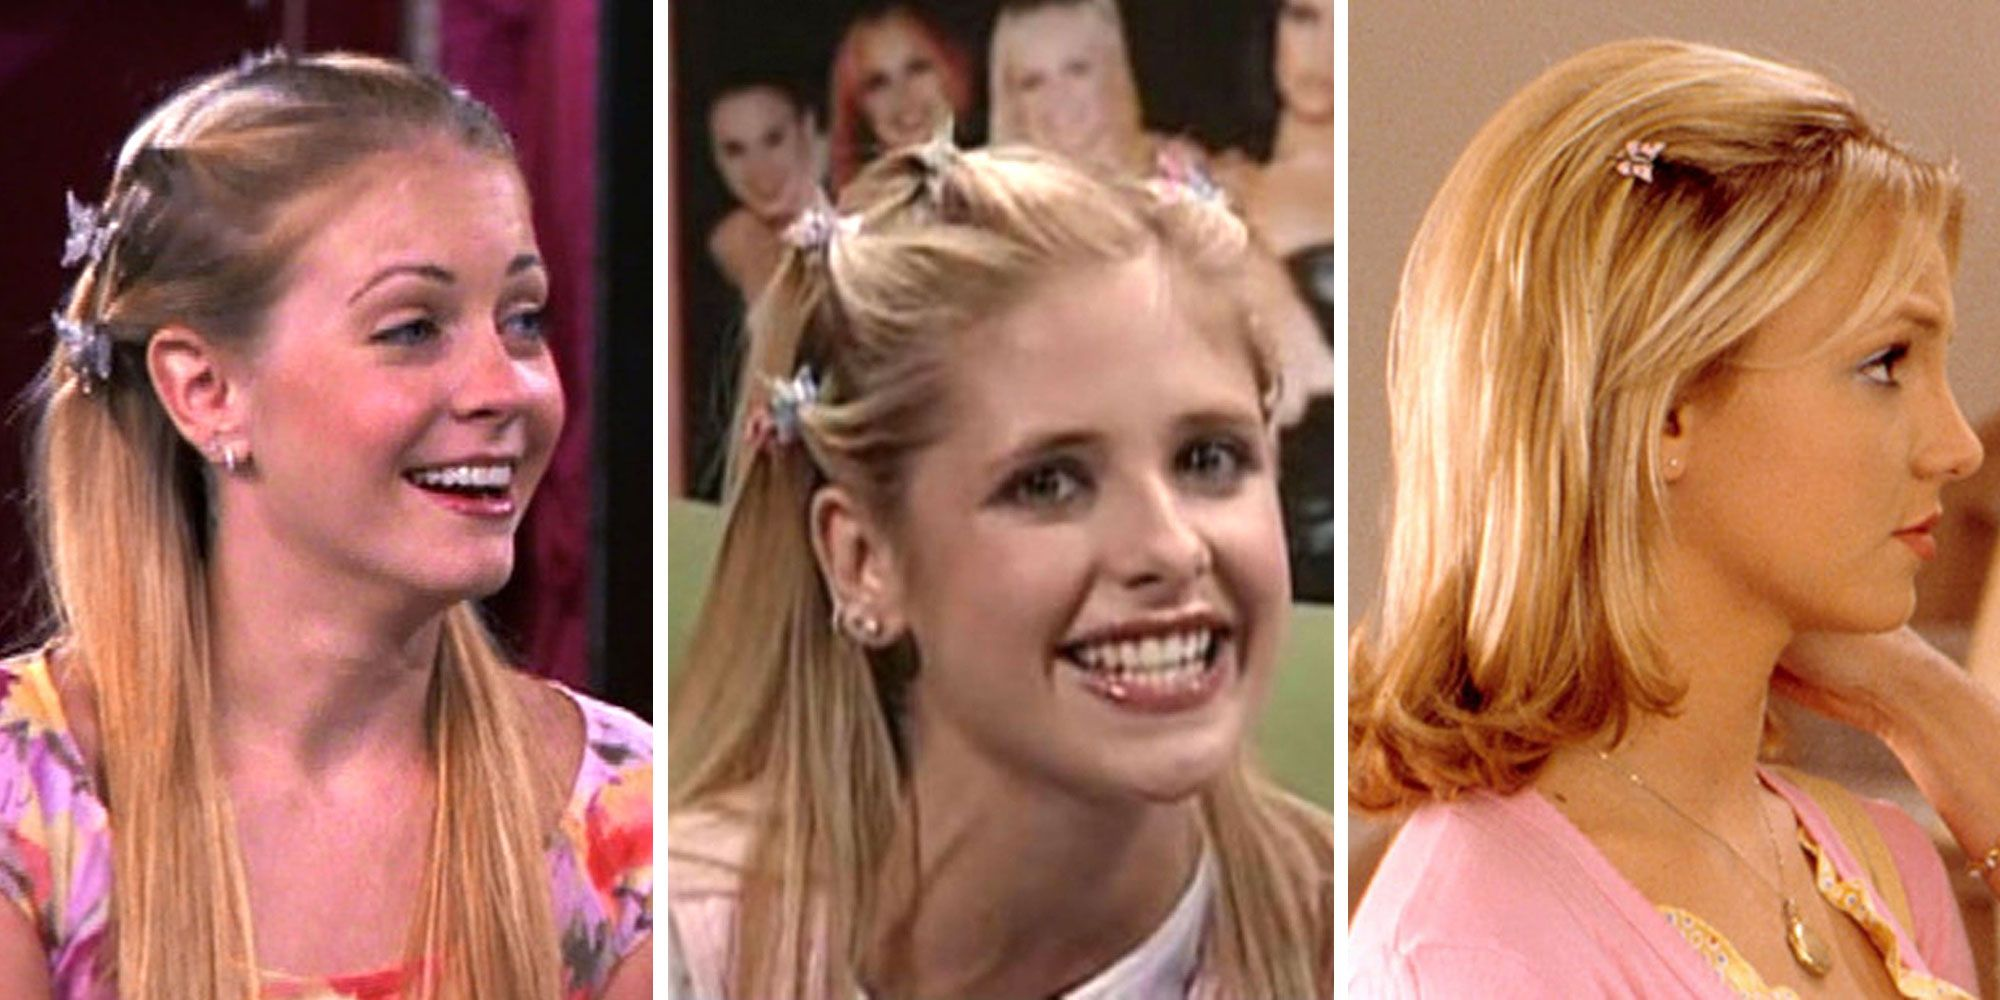 13 Butterfly Clip Hairstyles That Are So Late 90s It Hurts Clip Hairstyles 90s Hairstyles Kids Hairstyles